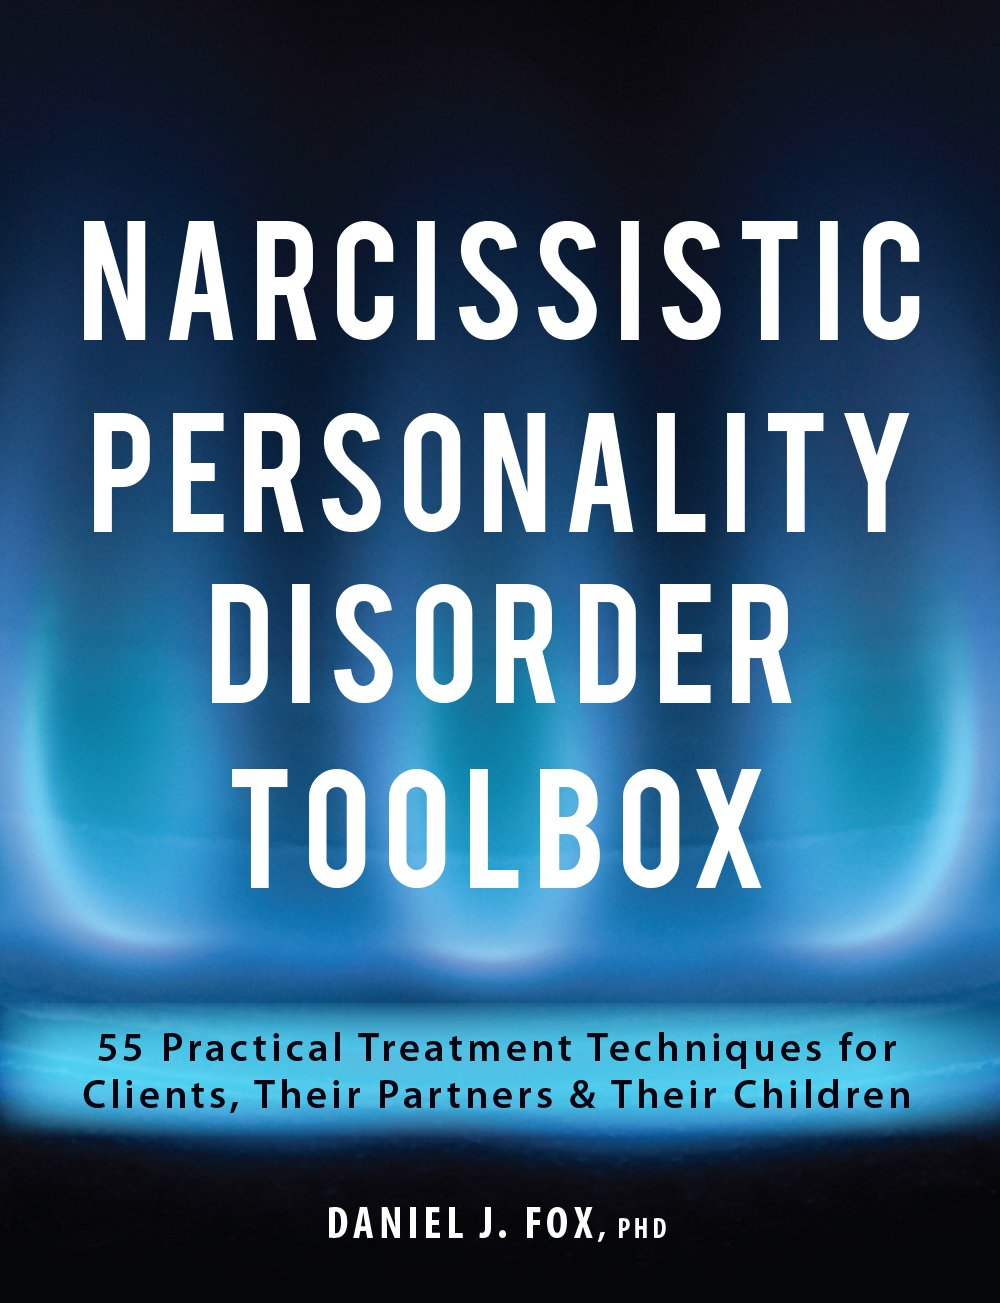 Narcissistic Personality Disorder Toolbox Techniques product image